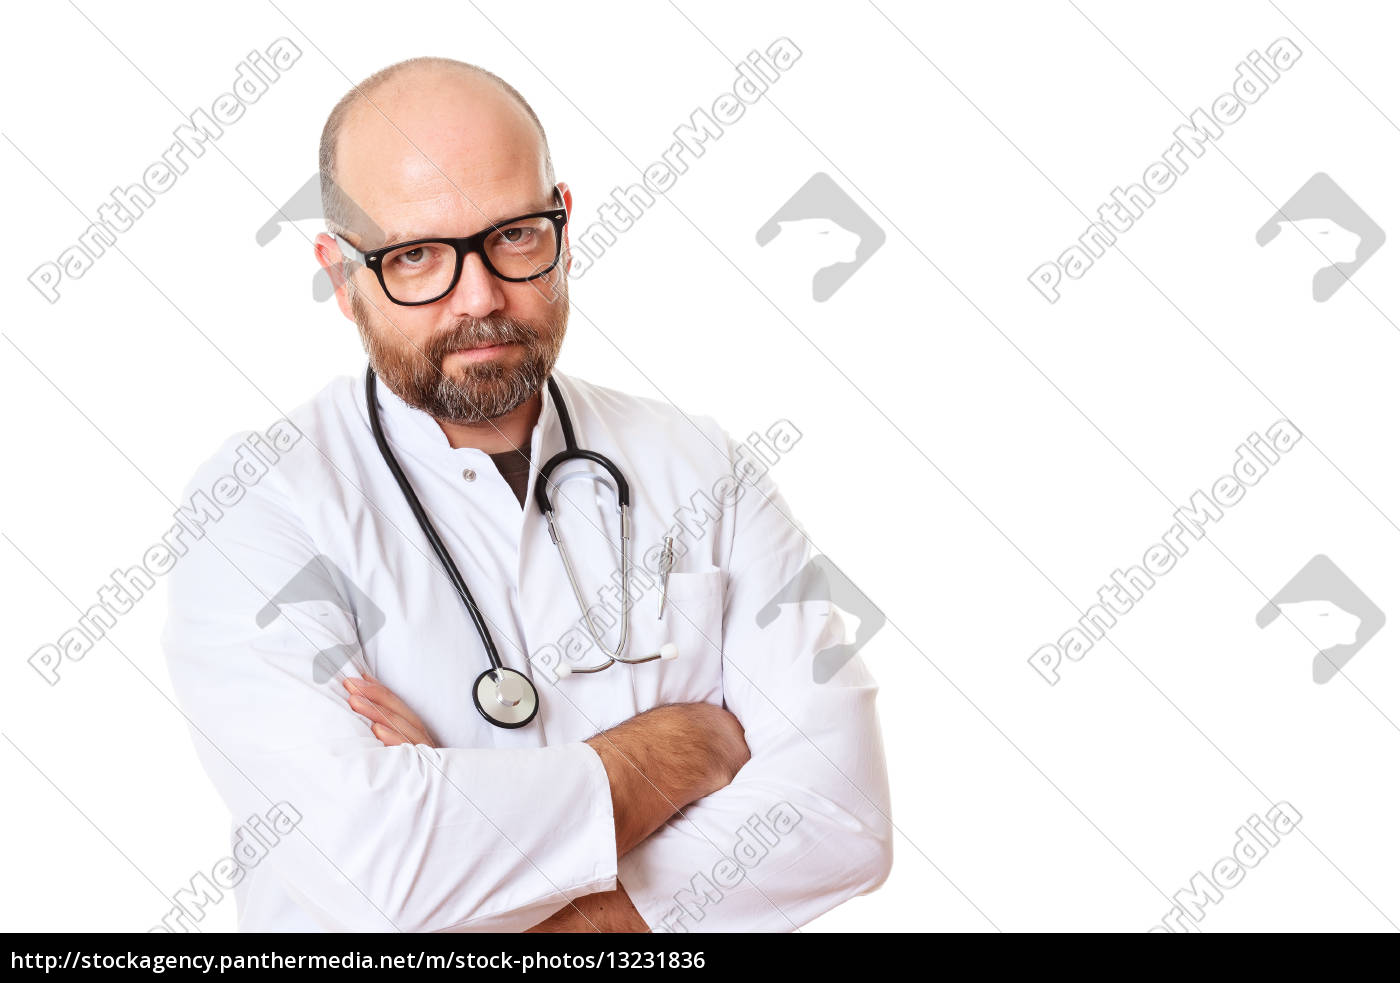 doctor, with, glasses, and, stethoscope - 13231836